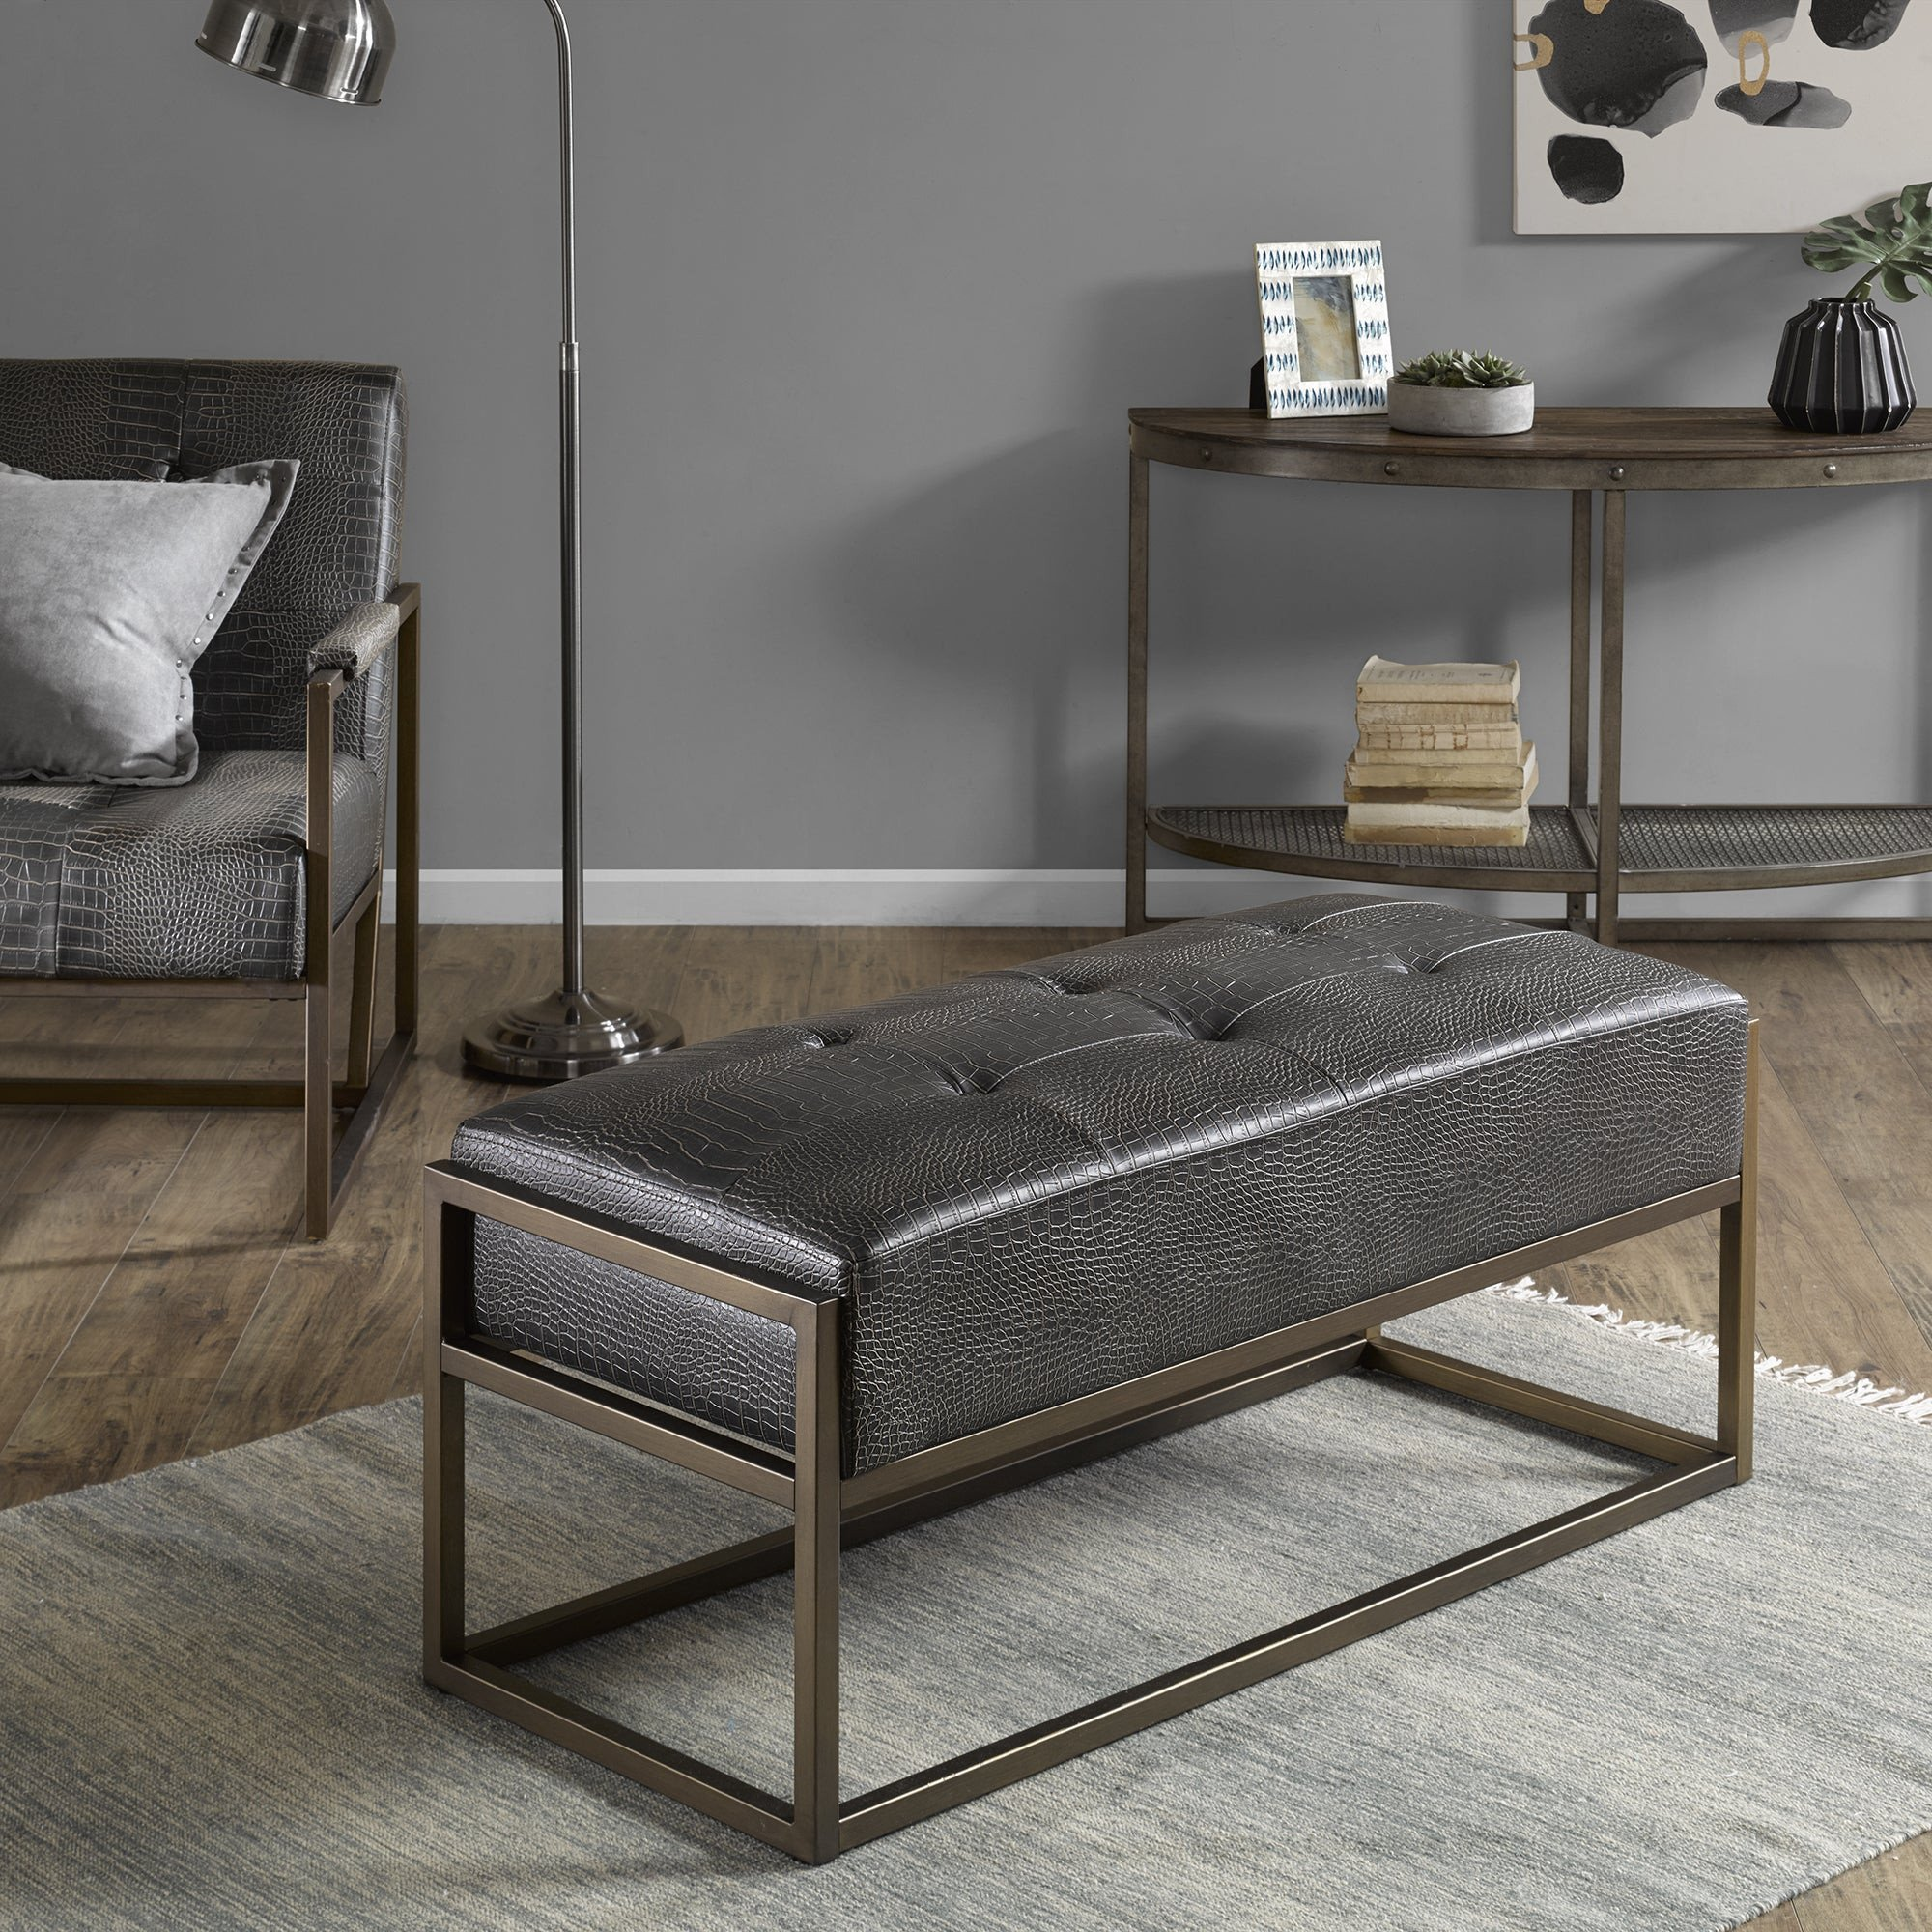 Small Storage Bench for Bedroom Unique Strick & Bolton normani Brown Faux Leather Upholstered Antique Bronze Metal Bench